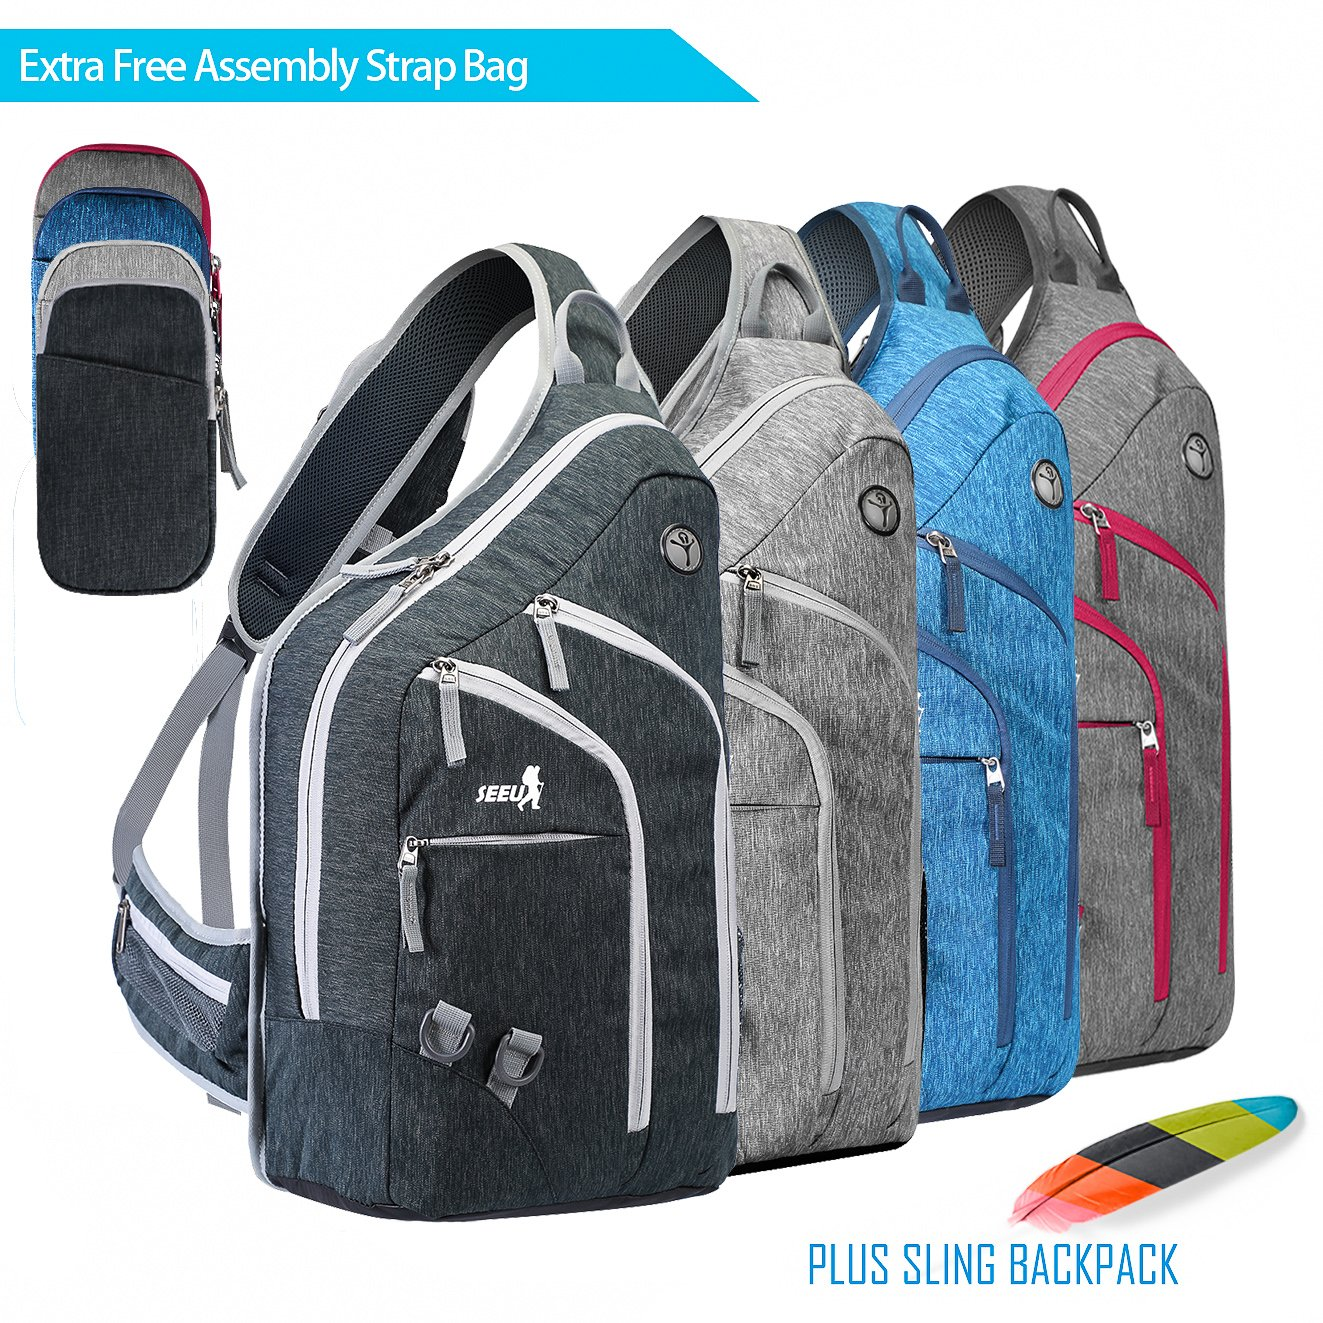 Backpack Plus Carry On Luggage- Fenix Toulouse Handball ef35073b73aa6